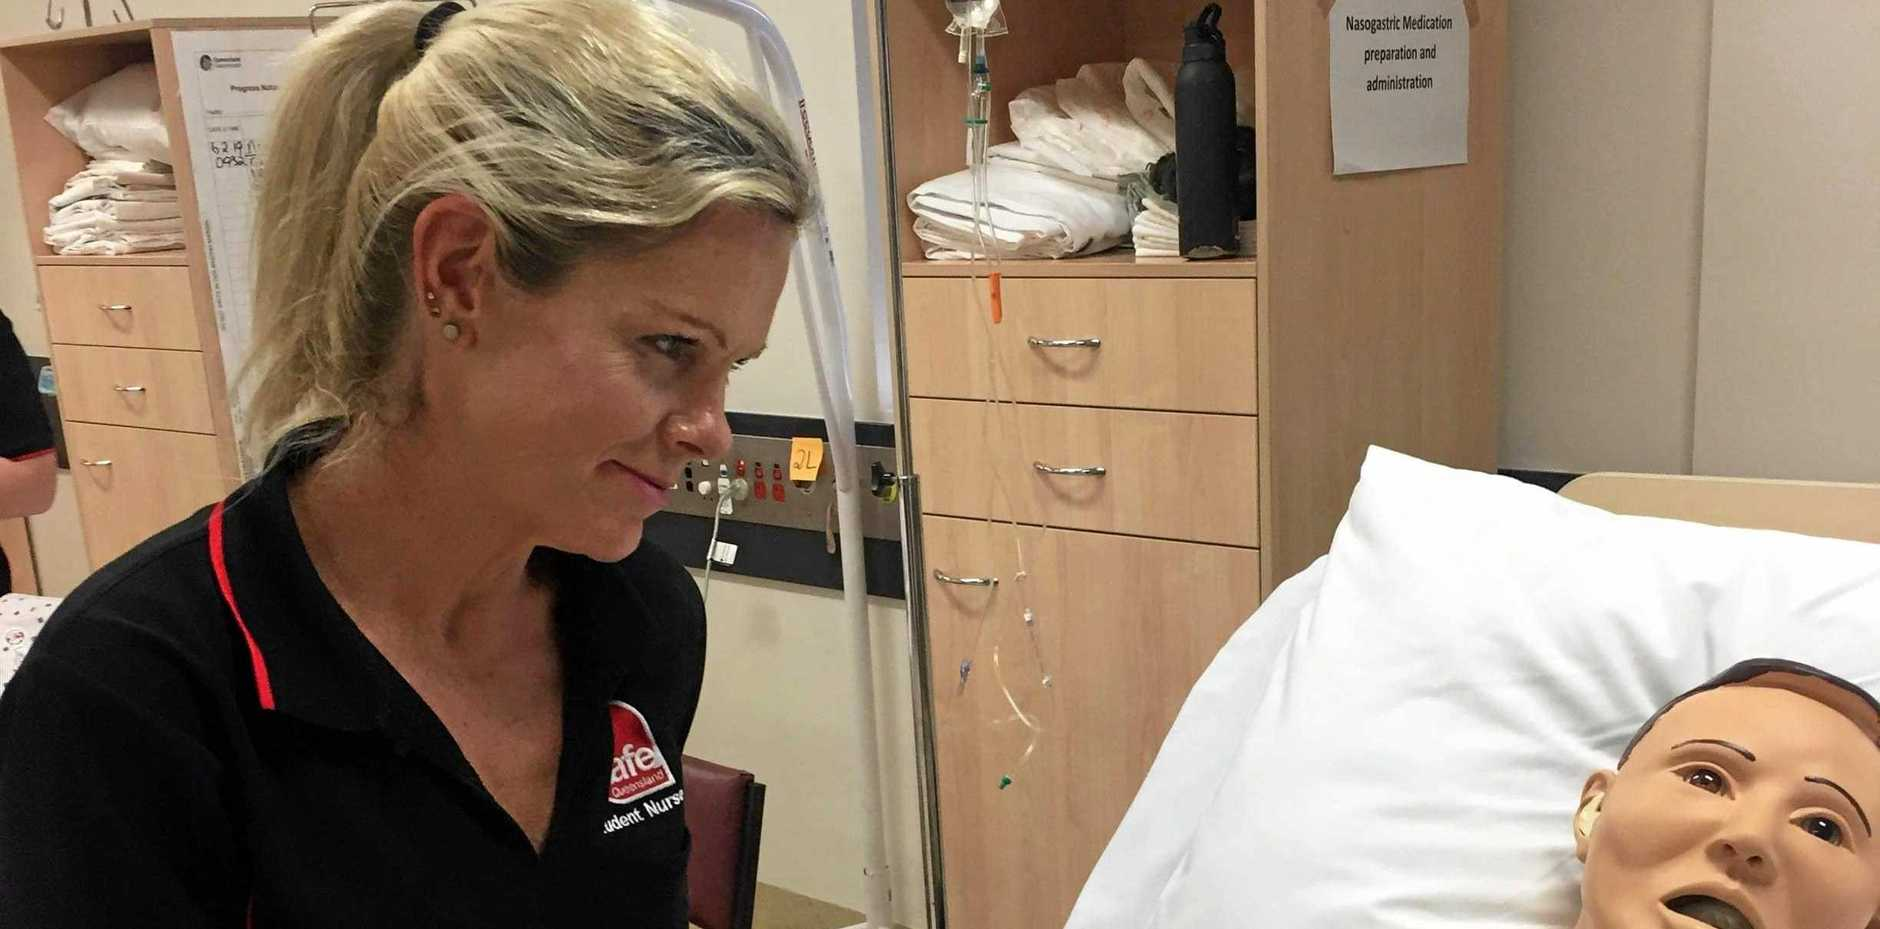 LEARNING JOURNEY: TAFE Queensland student Kim Bauer is excited to be learning about nursing. She balances study with being a mother.